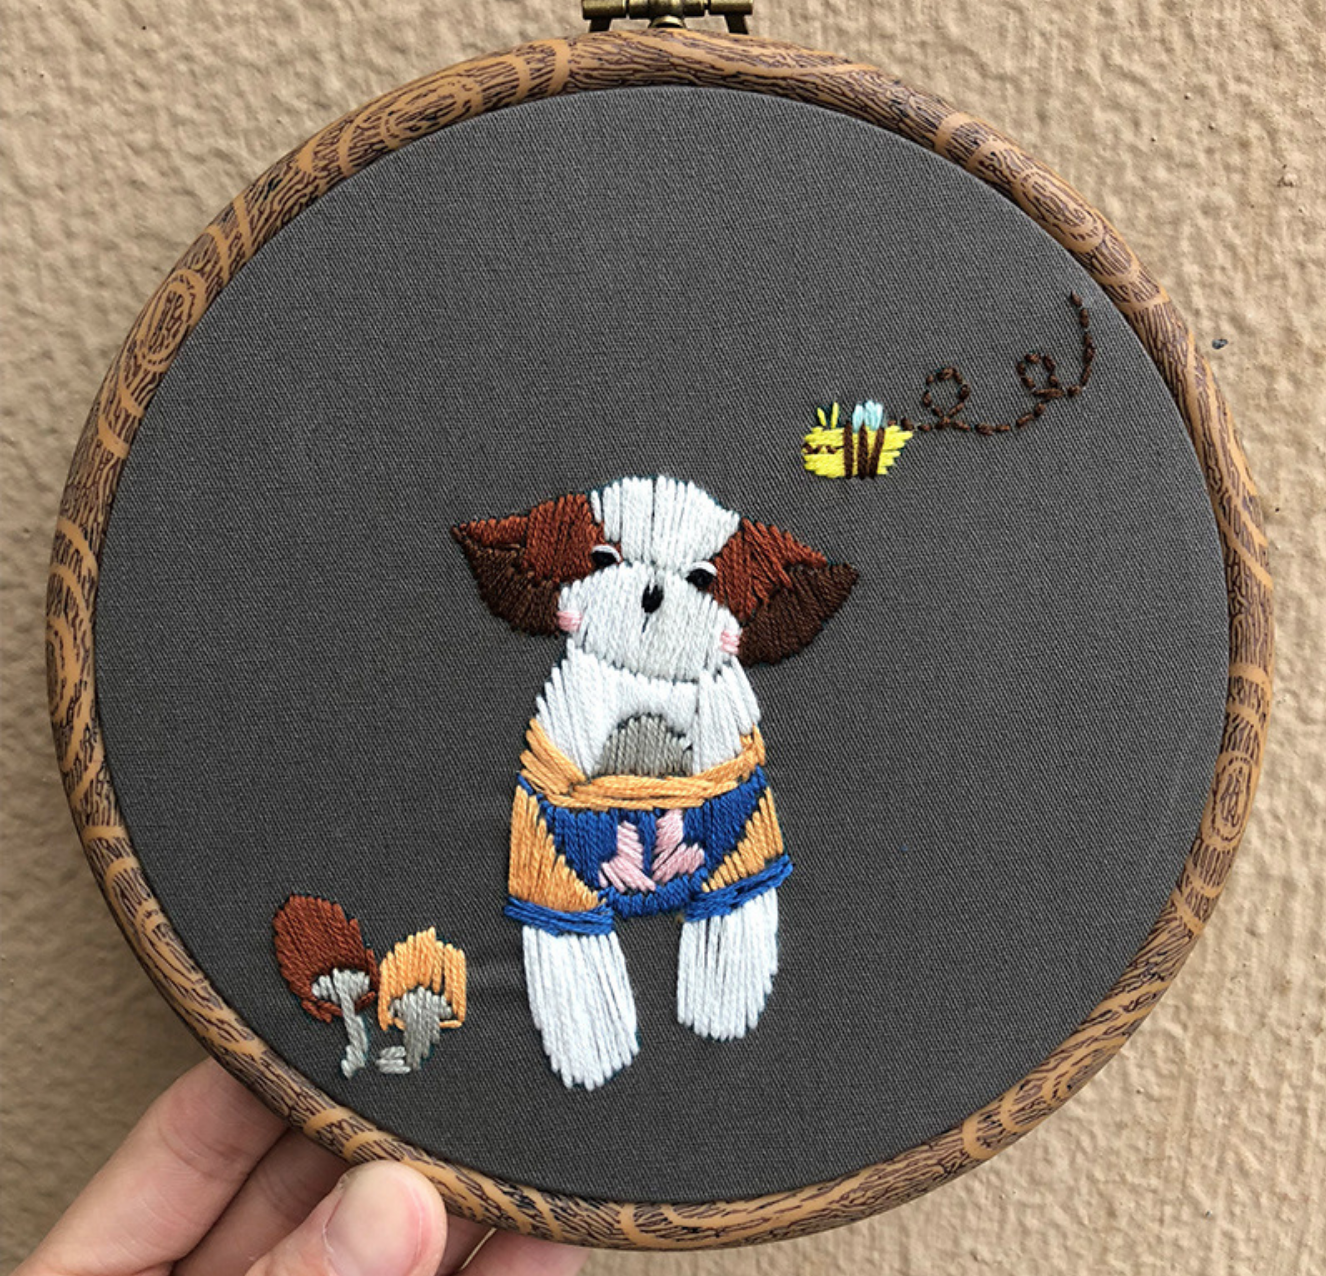 Puppy and Bee 15cm Embroidery